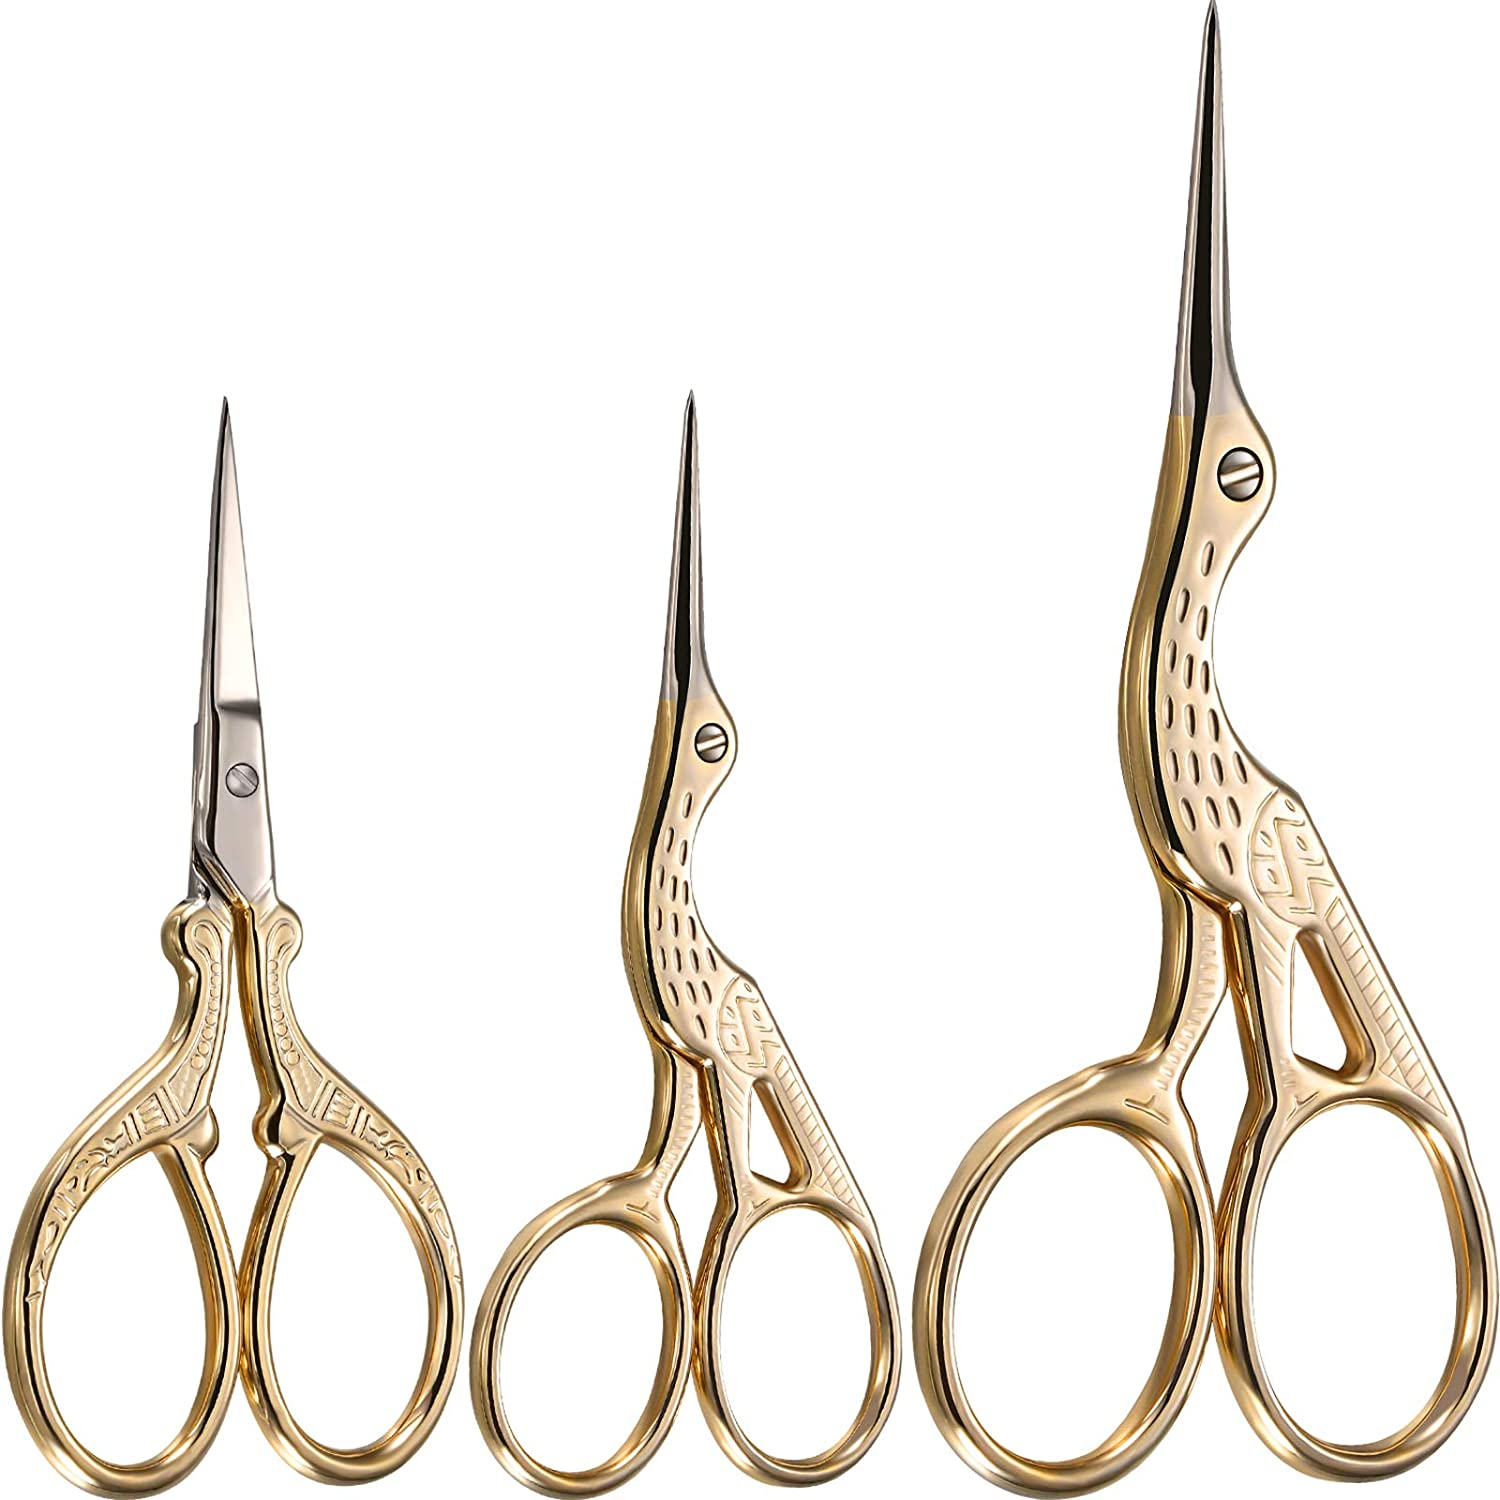 3 Pieces Stork Scissors Stainless Steel Crane Design Sewing Scissors Embroidery Scissors Tailor Scissors Dressmaker Shears for Embroidery, Paper Cutting, Sewing and Daily Activities (Gold)